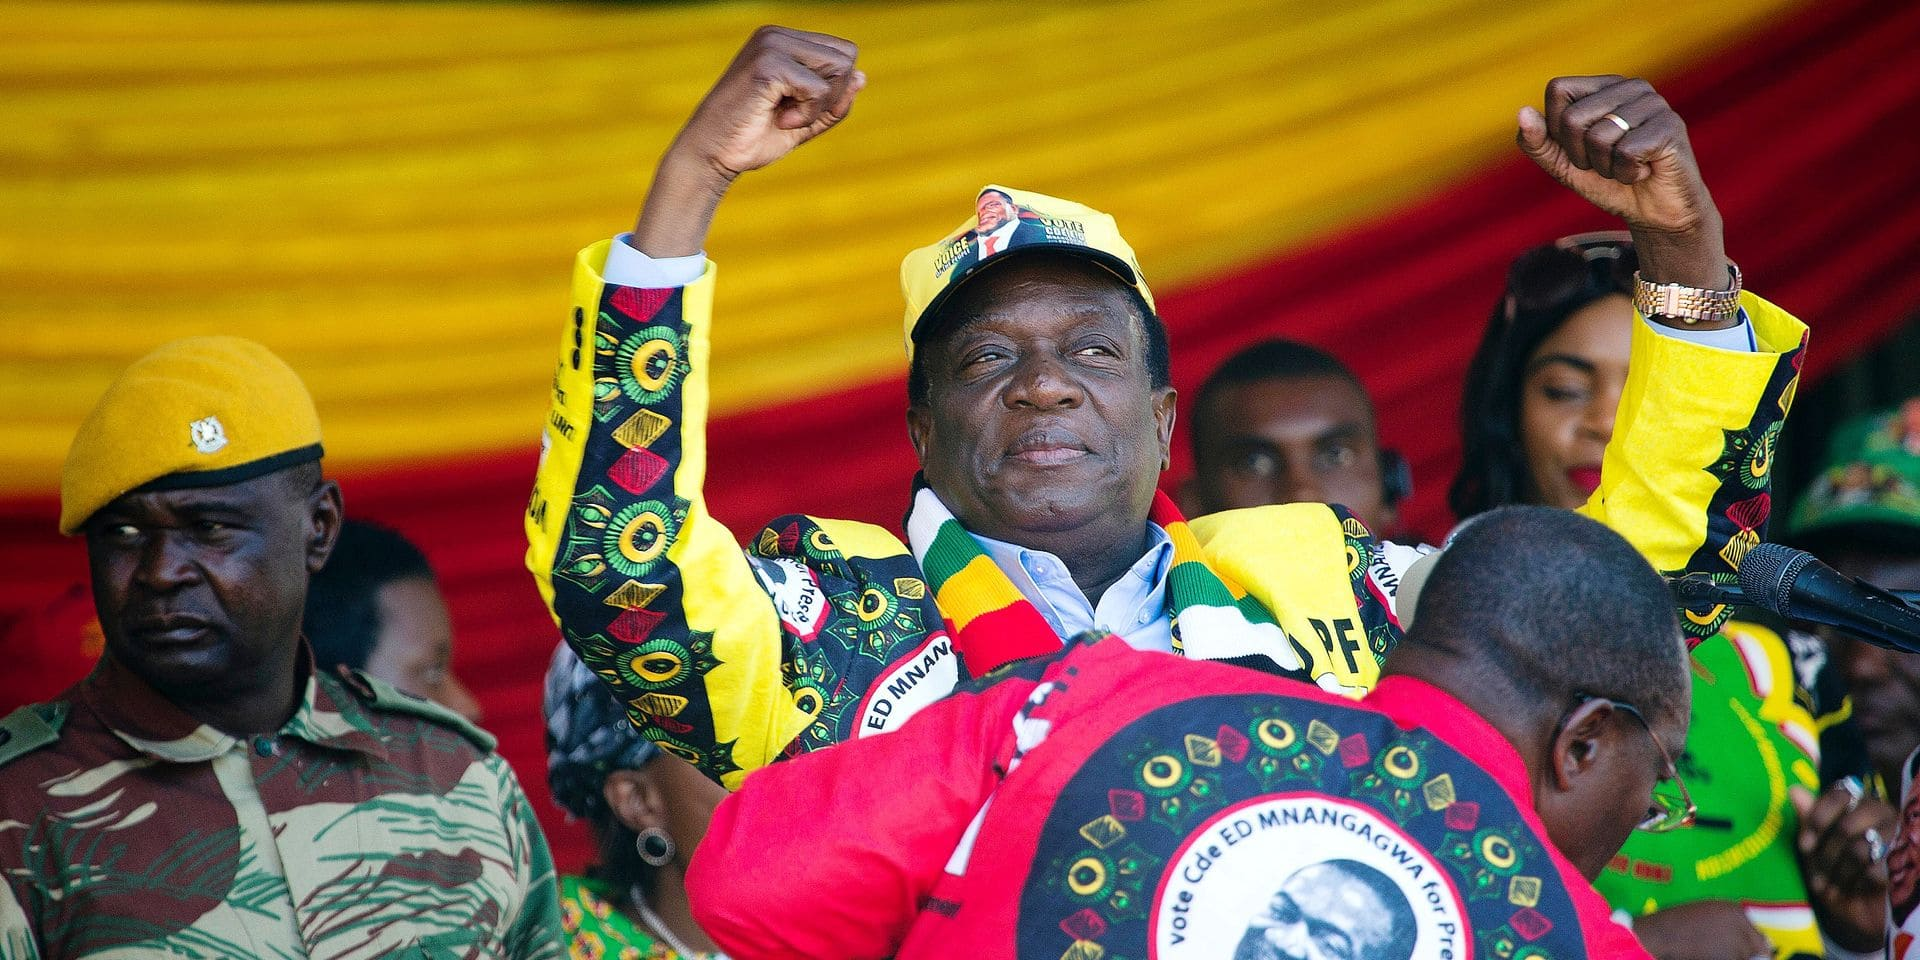 """Zimbabwean President Emmerson Mnangagwa addresses the final rally of his campaign at the stadium in Harare, Zimbabwe, Saturday July 28, 2018. Zimbabwean President Emmerson Mnangagwa has promised a """"thunderous victory"""" as he and main challenger Nelson Chamisa rally supporters one last time ahead of Monday's election. (AP Photo/Jerome Delay)"""